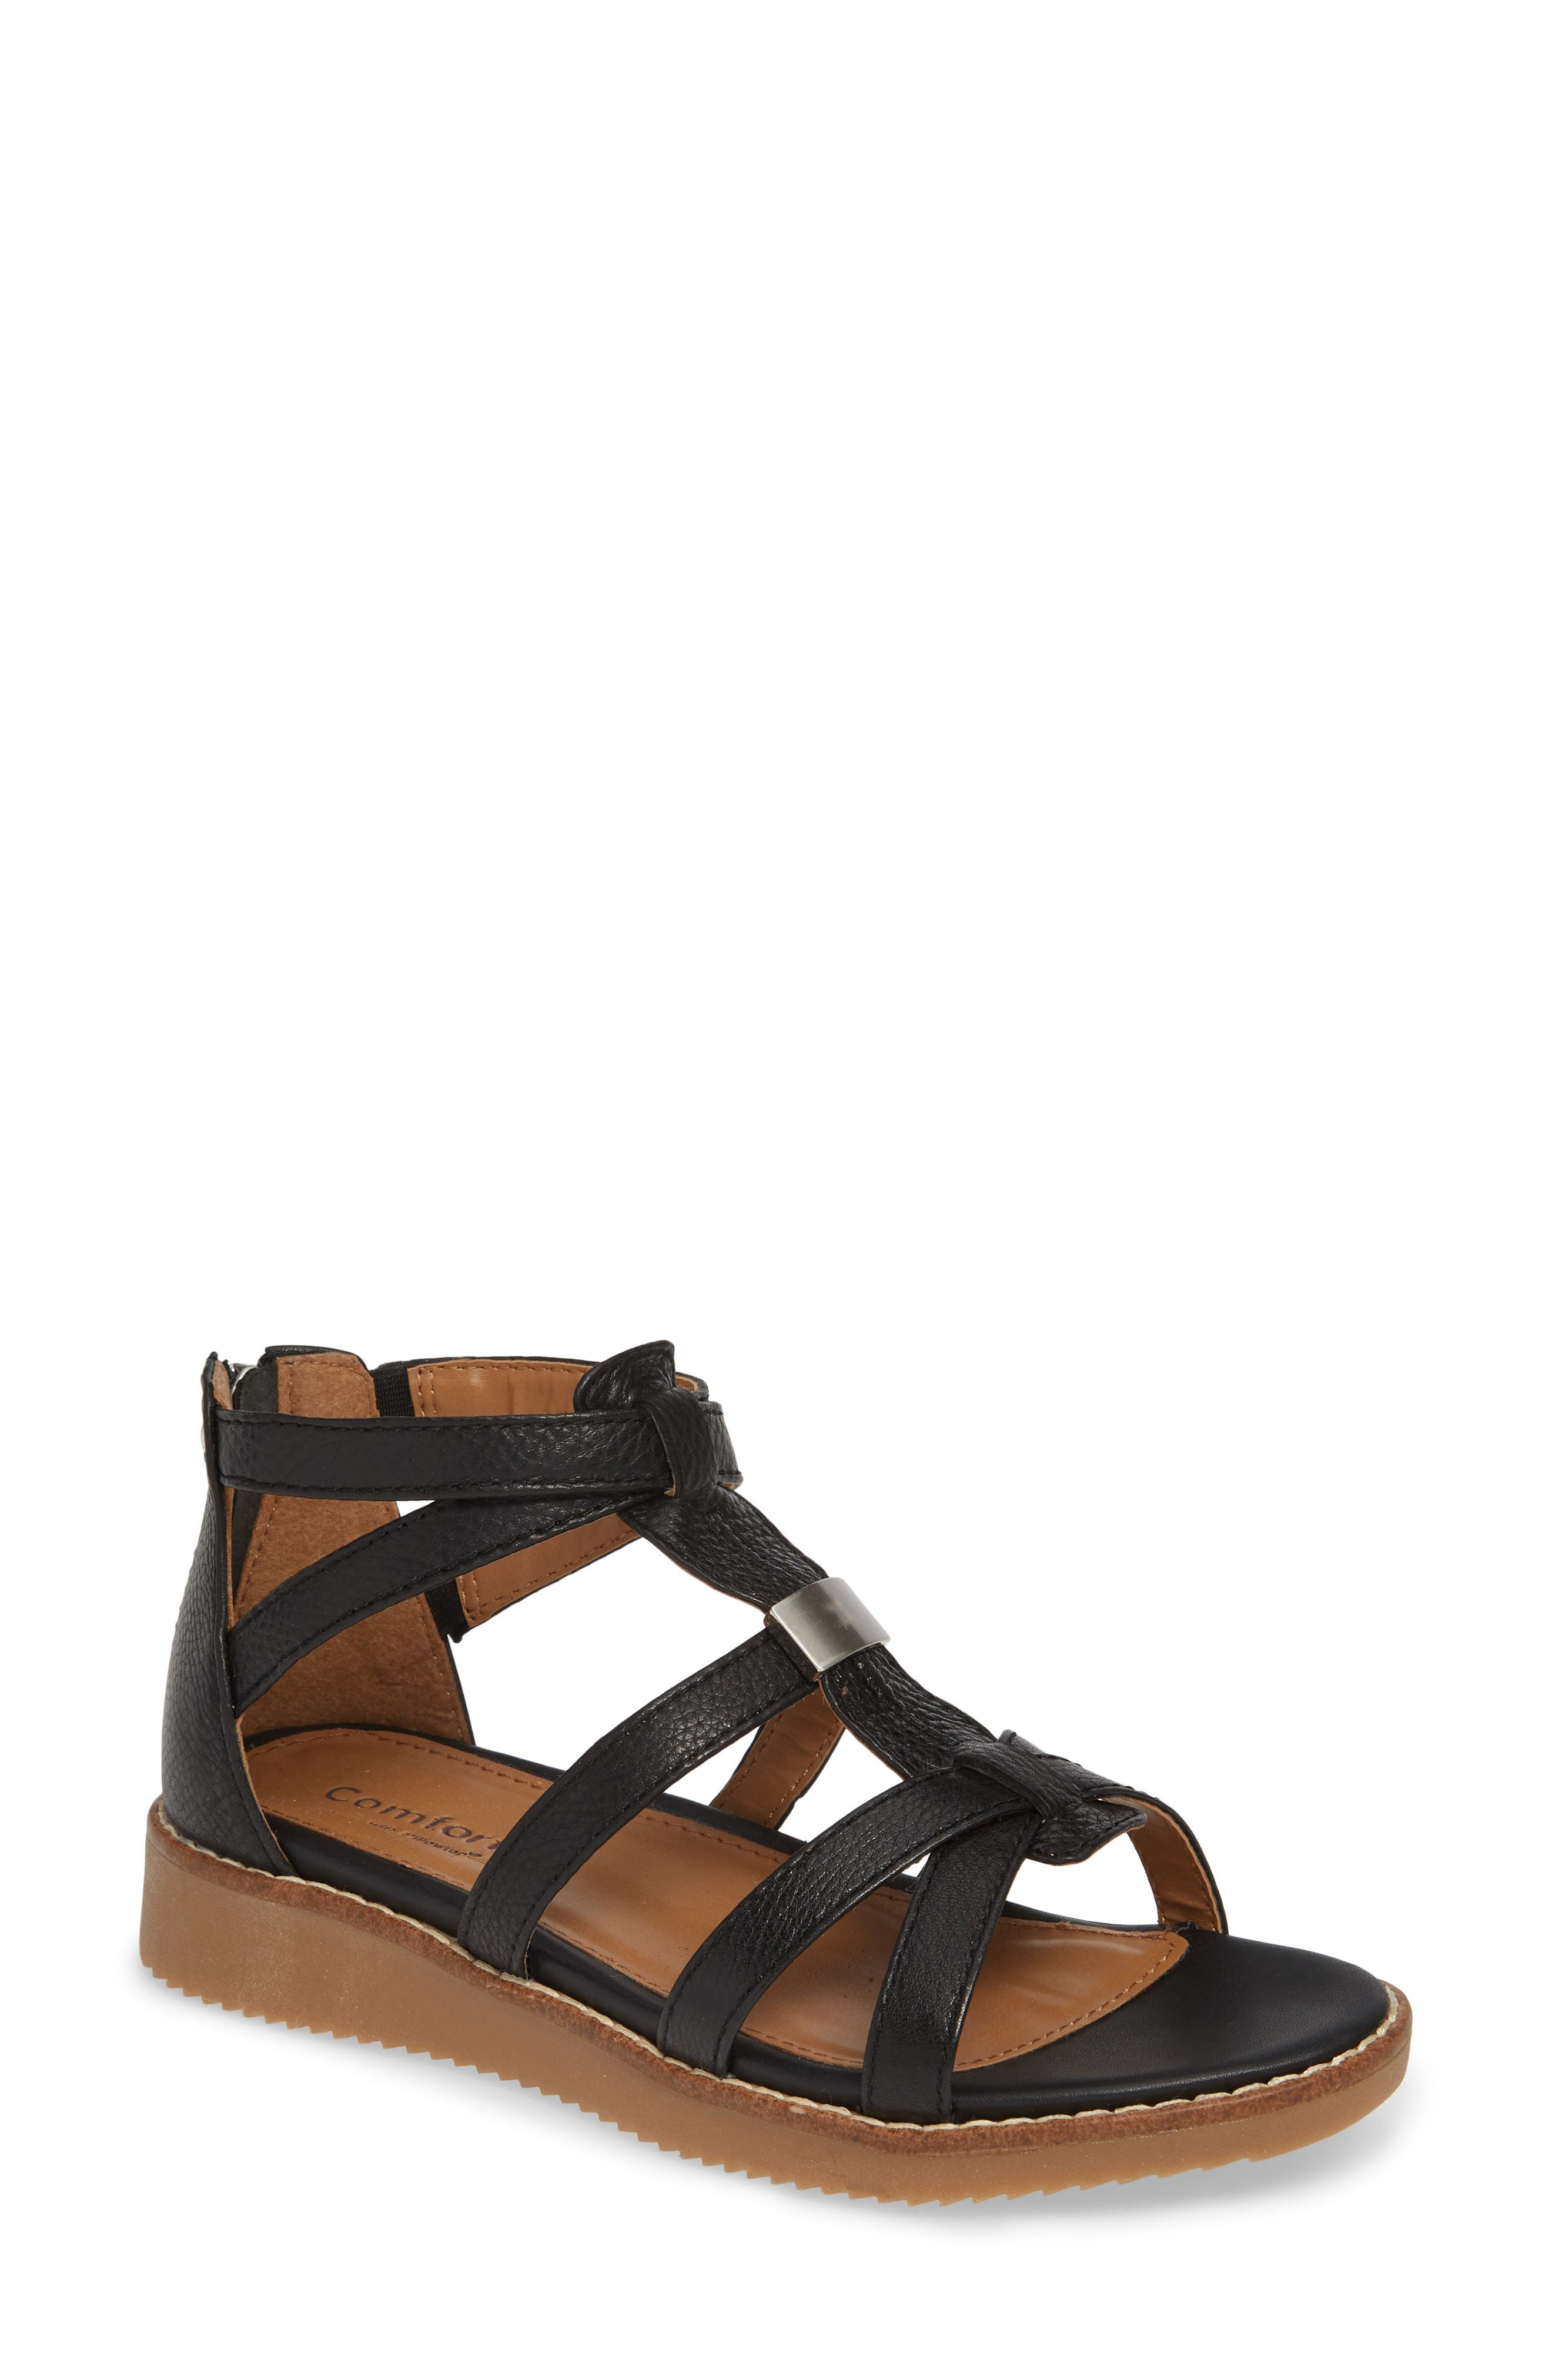 A low wedge heel adds just-right lift to a gladiator-inspired sandal fitted with Comfortiva\\\'s Pillowtop memory foam-cushioned footbed for lasting comfort. Style Name: Comfortiva Wyola Sandal (Women). Style Number: 5807680. Available in stores.